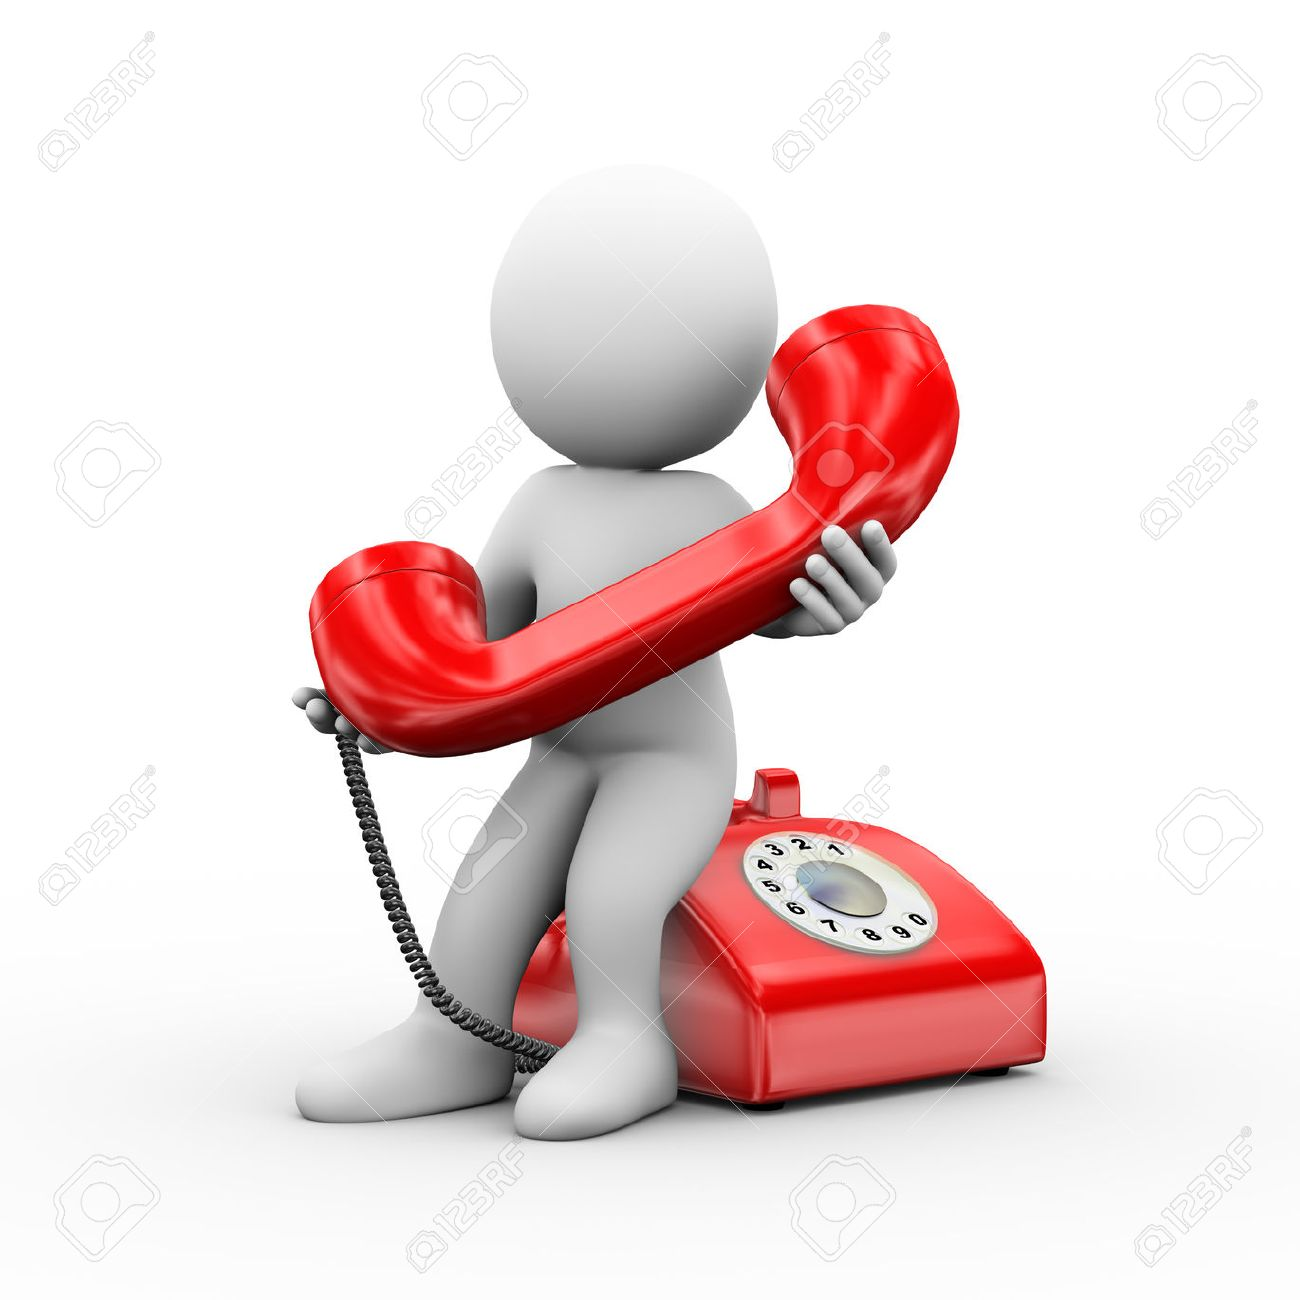 Image result for telephone call